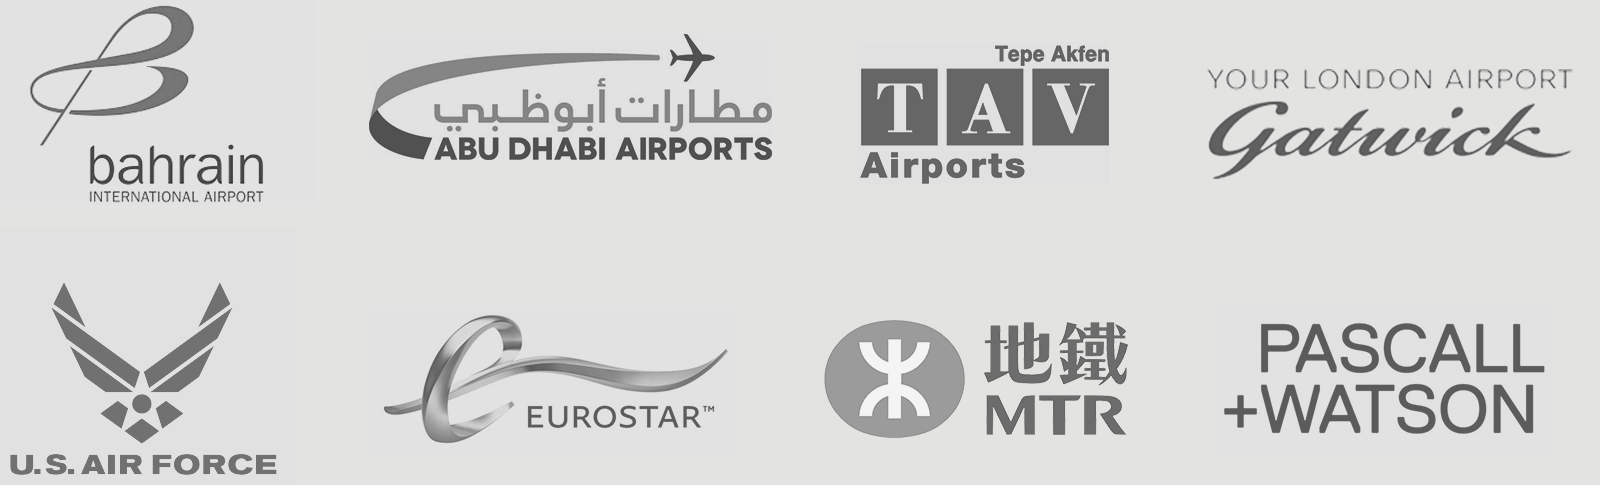 omk client partner logos bahrain international airport abu dhabi tepe akfen london gatwick US air force eurostar MTR pascall and watson architects